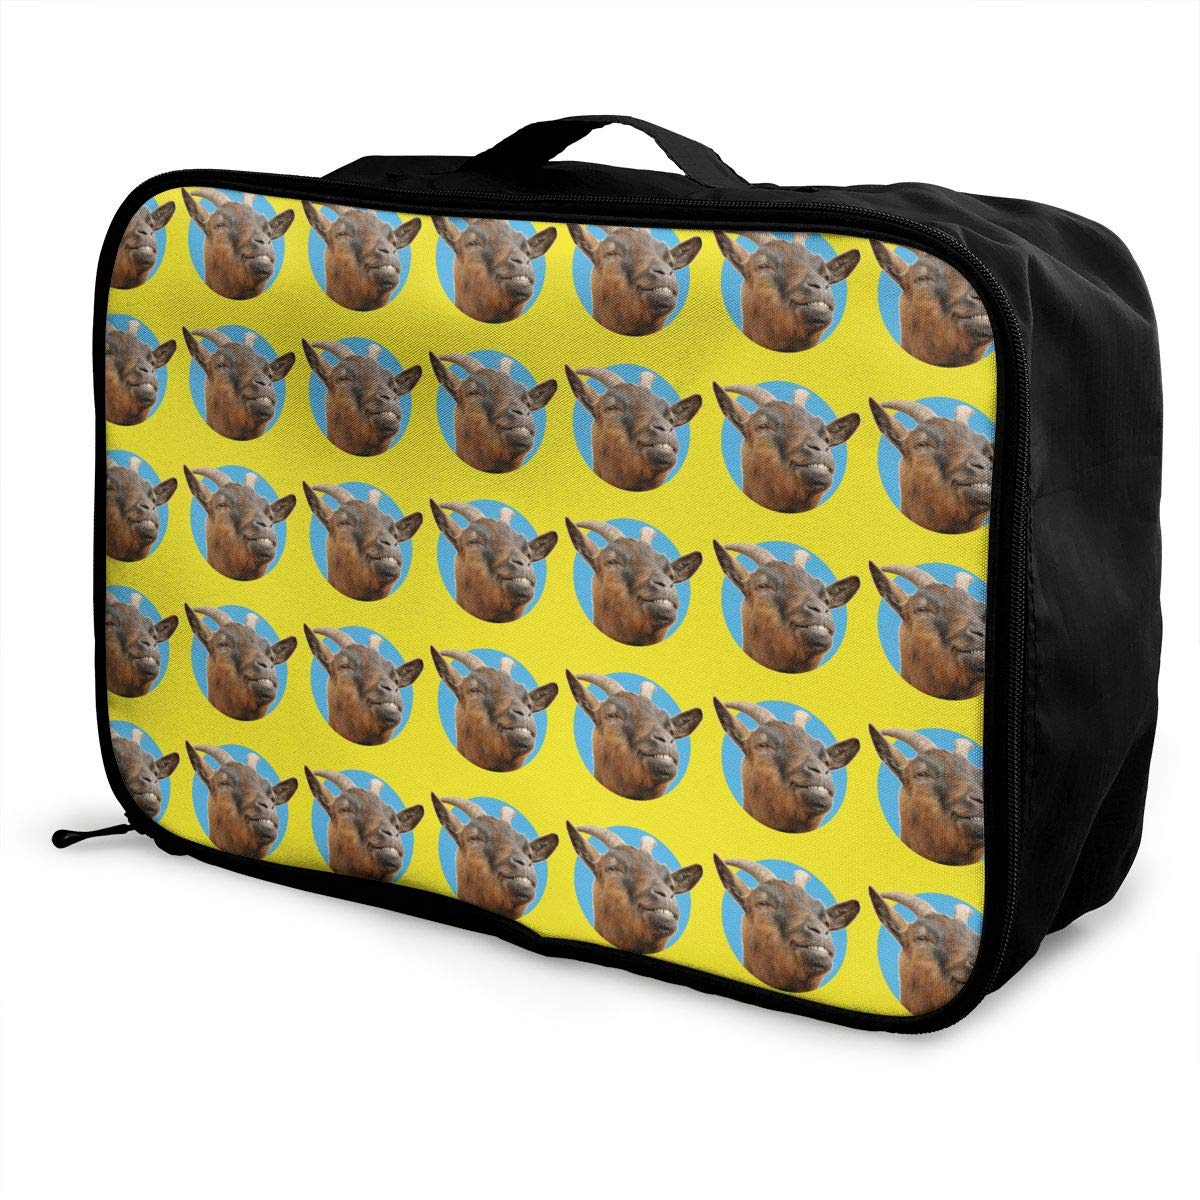 YueLJB Happy Goat Head Pattern Lightweight Large Capacity Portable Luggage Bag Travel Duffel Bag Storage Carry Luggage Duffle Tote Bag